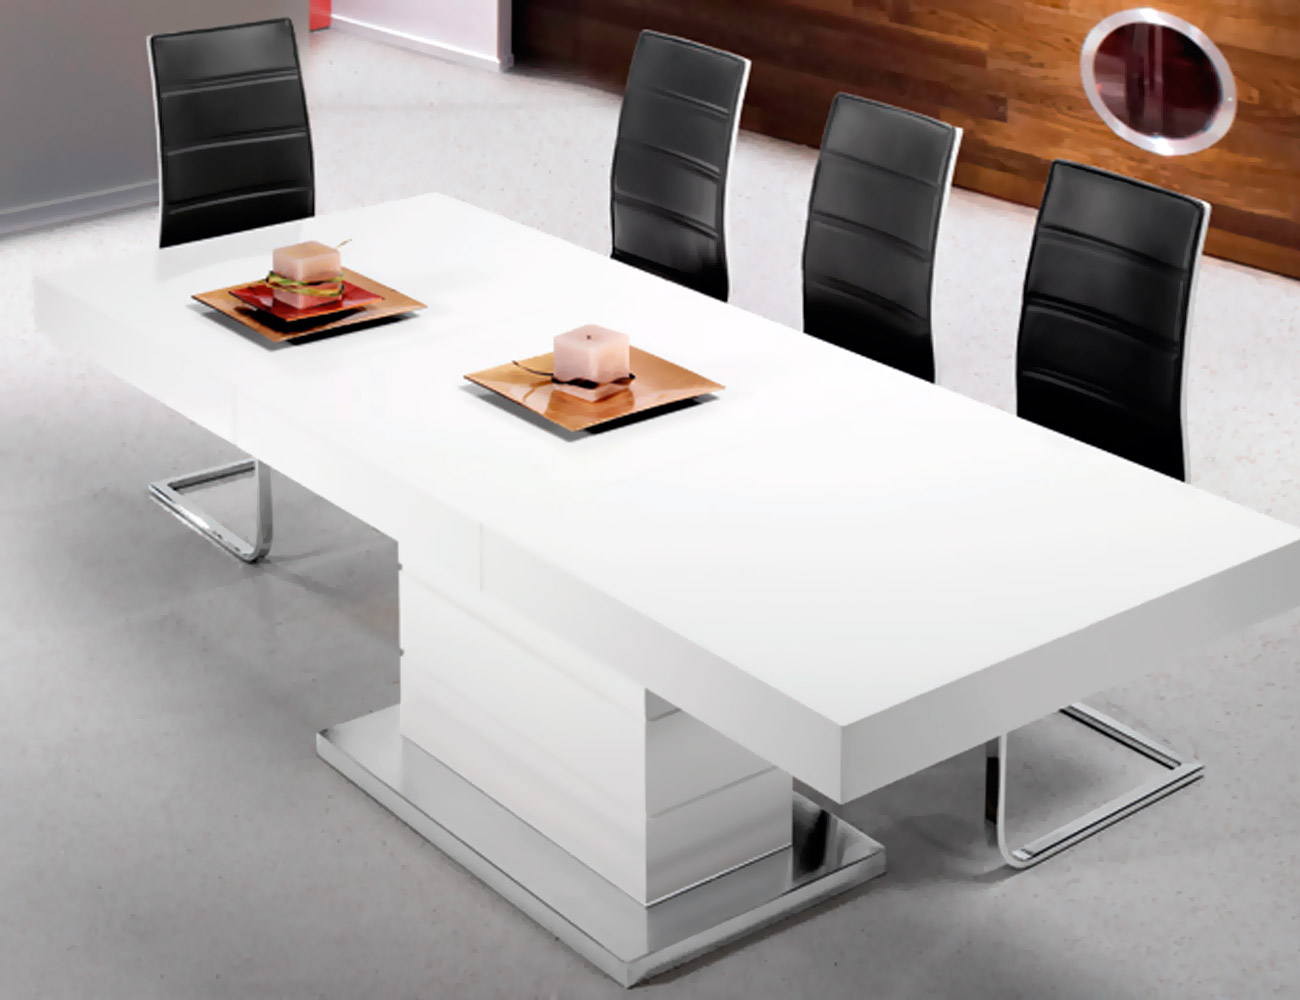 Mesa de comedor en blanco alto brillo extensible de 150 a for Mesas de salon blancas